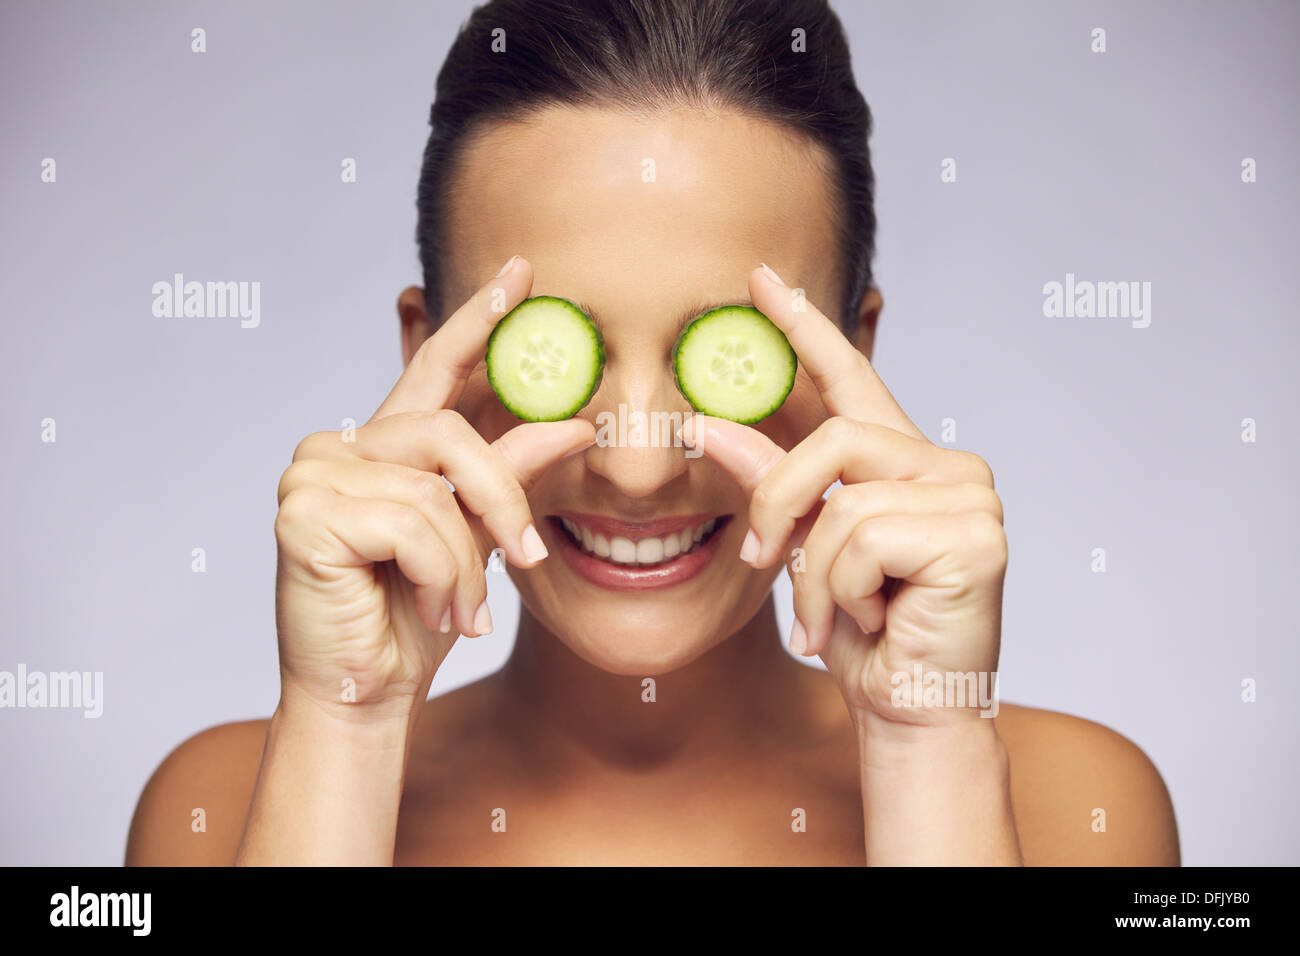 Beautiful and smiling young woman holding slice of cucumber in front of eyes on gray background. Eye care concept - Stock Image